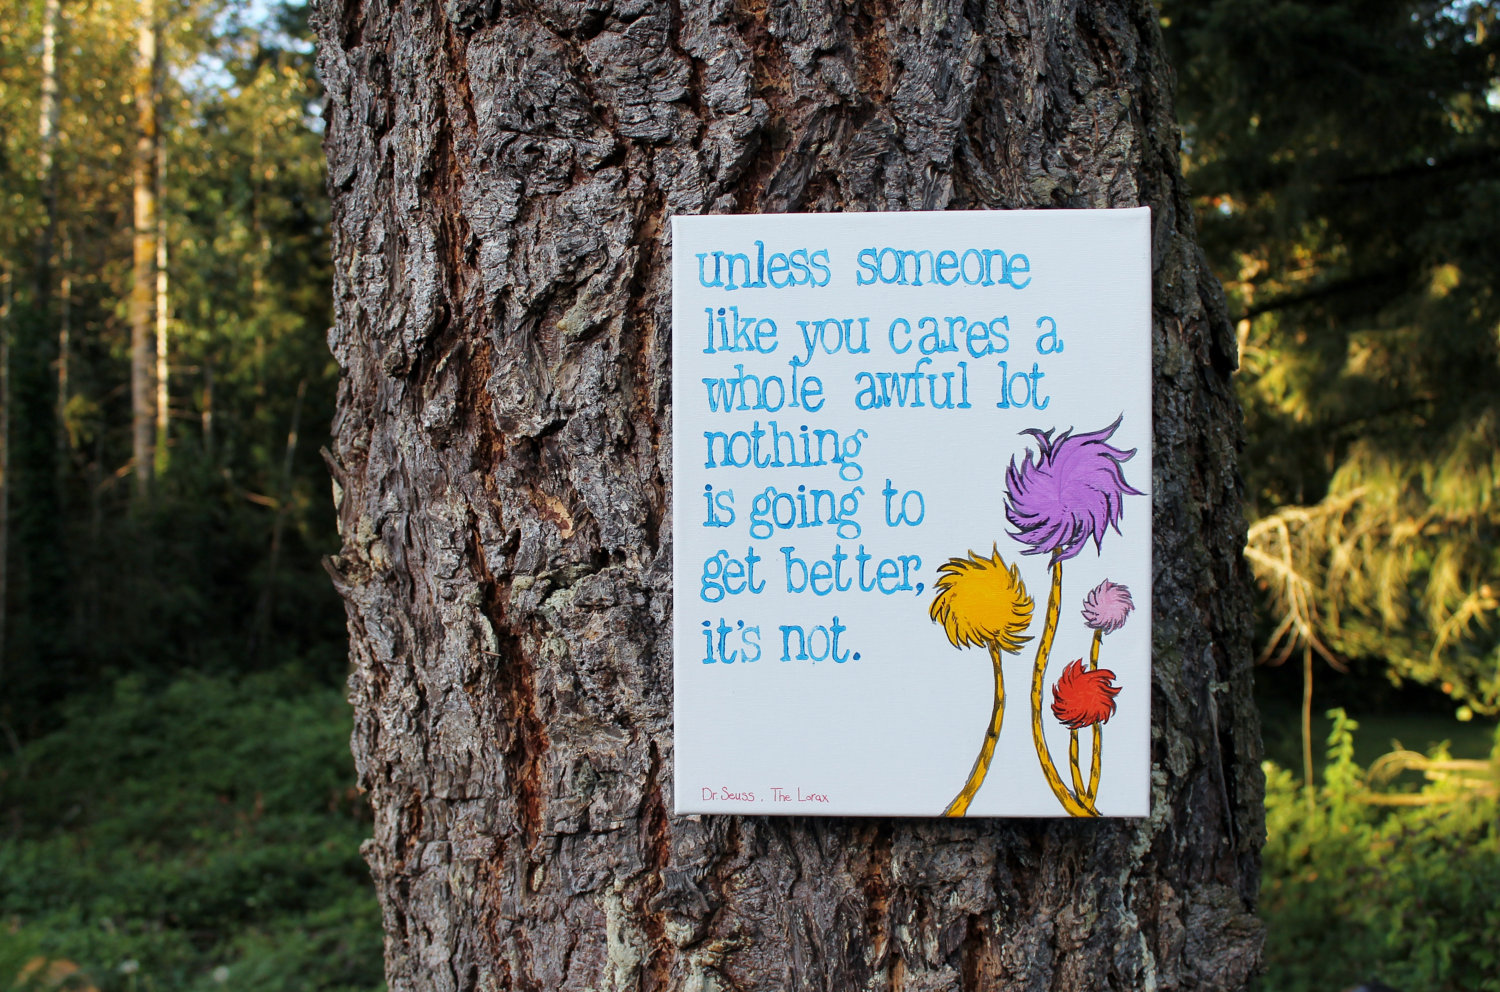 Following the advice of the great Dr. Seuss.